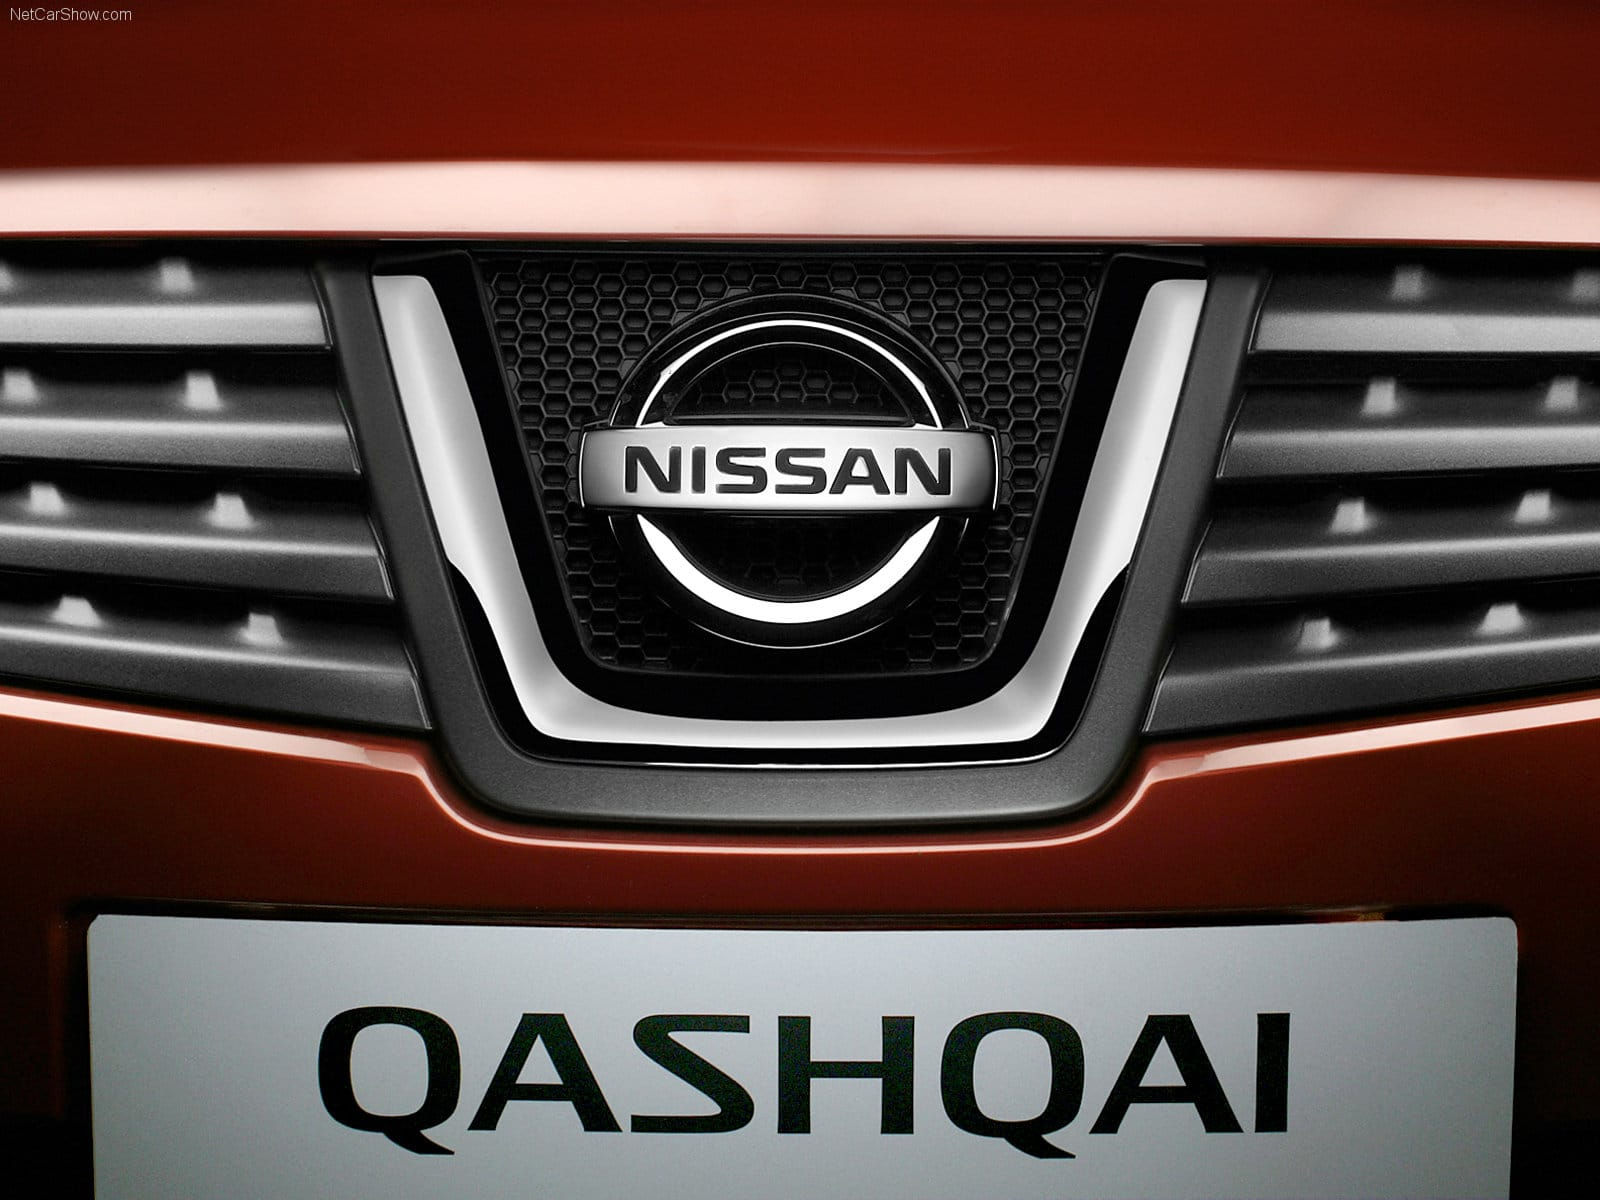 Nissan, Qashqai, Nissan Qashqai, SUV, SUV buying guide, family car, 4x4, Nissan buying guide, used cars, cheap car, cheap family car, motoring, automotive, car, cars, ebay, ebay motors, Adrian Flux, Autotrader, not 2 grand, www.not2grand.co.uk, featured